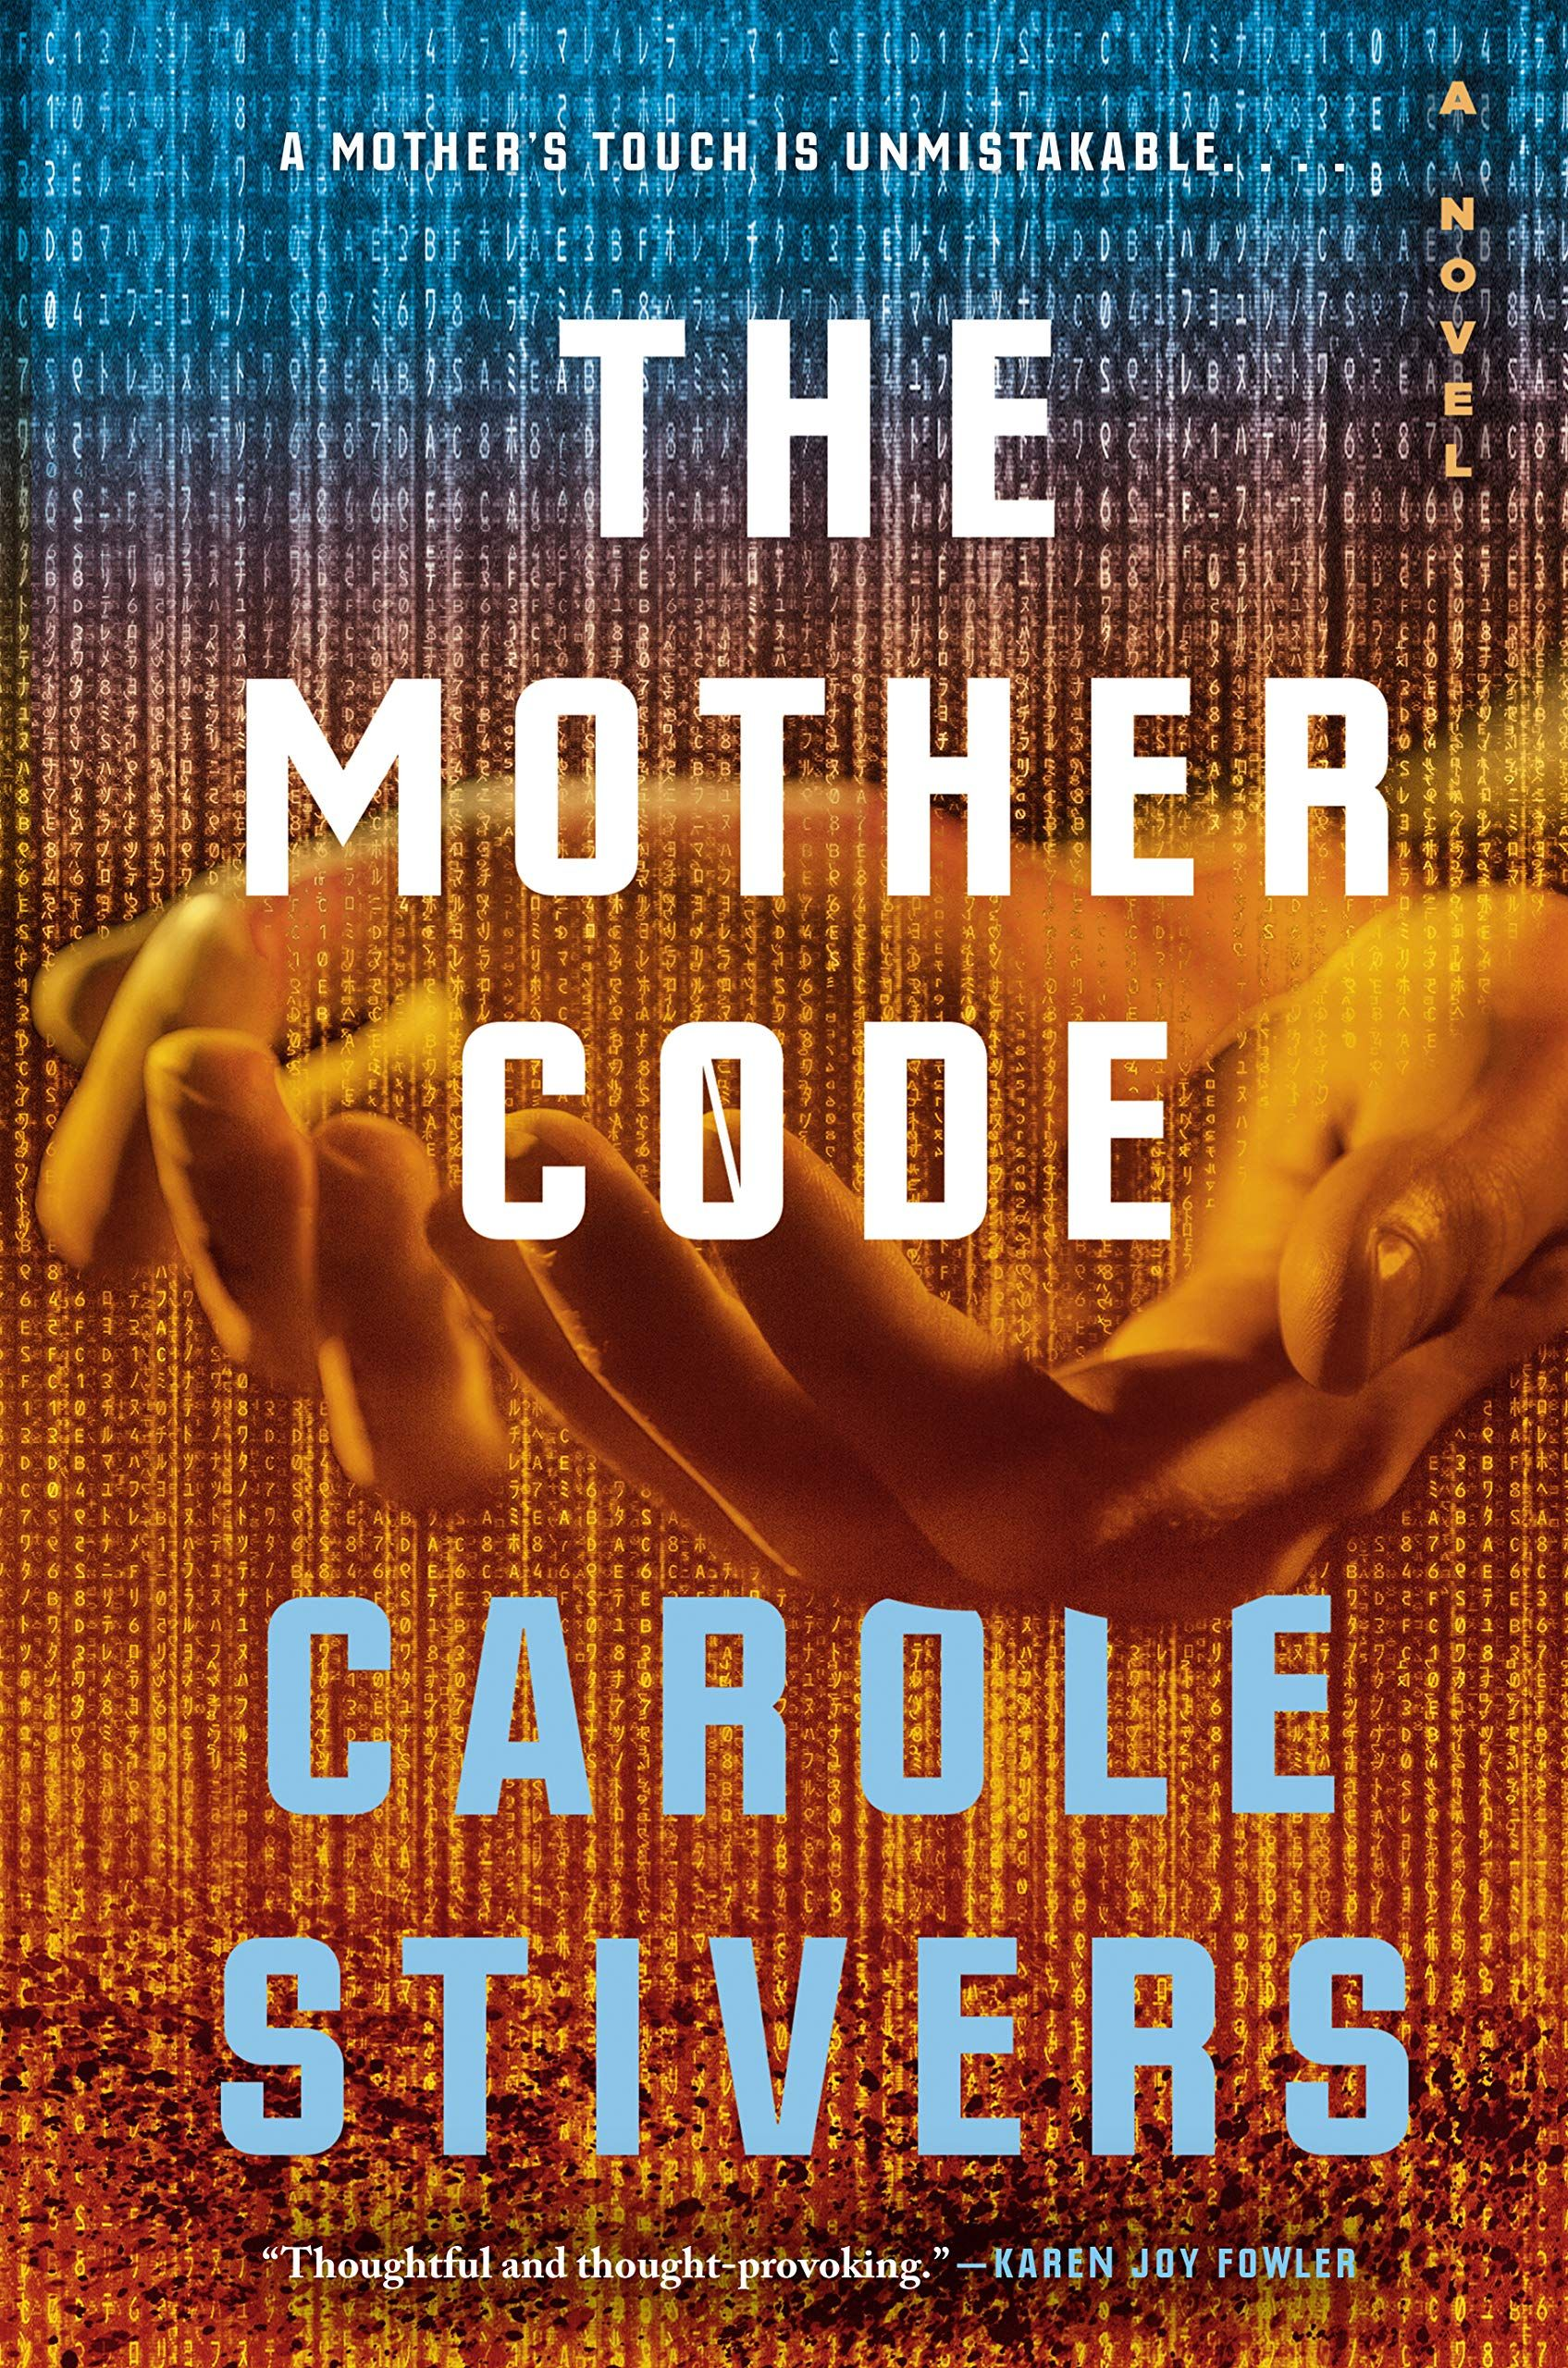 Pdf The Mother Code By Carole Stivers In 2020 Books To Read Online Books To Read Sci Fi Books